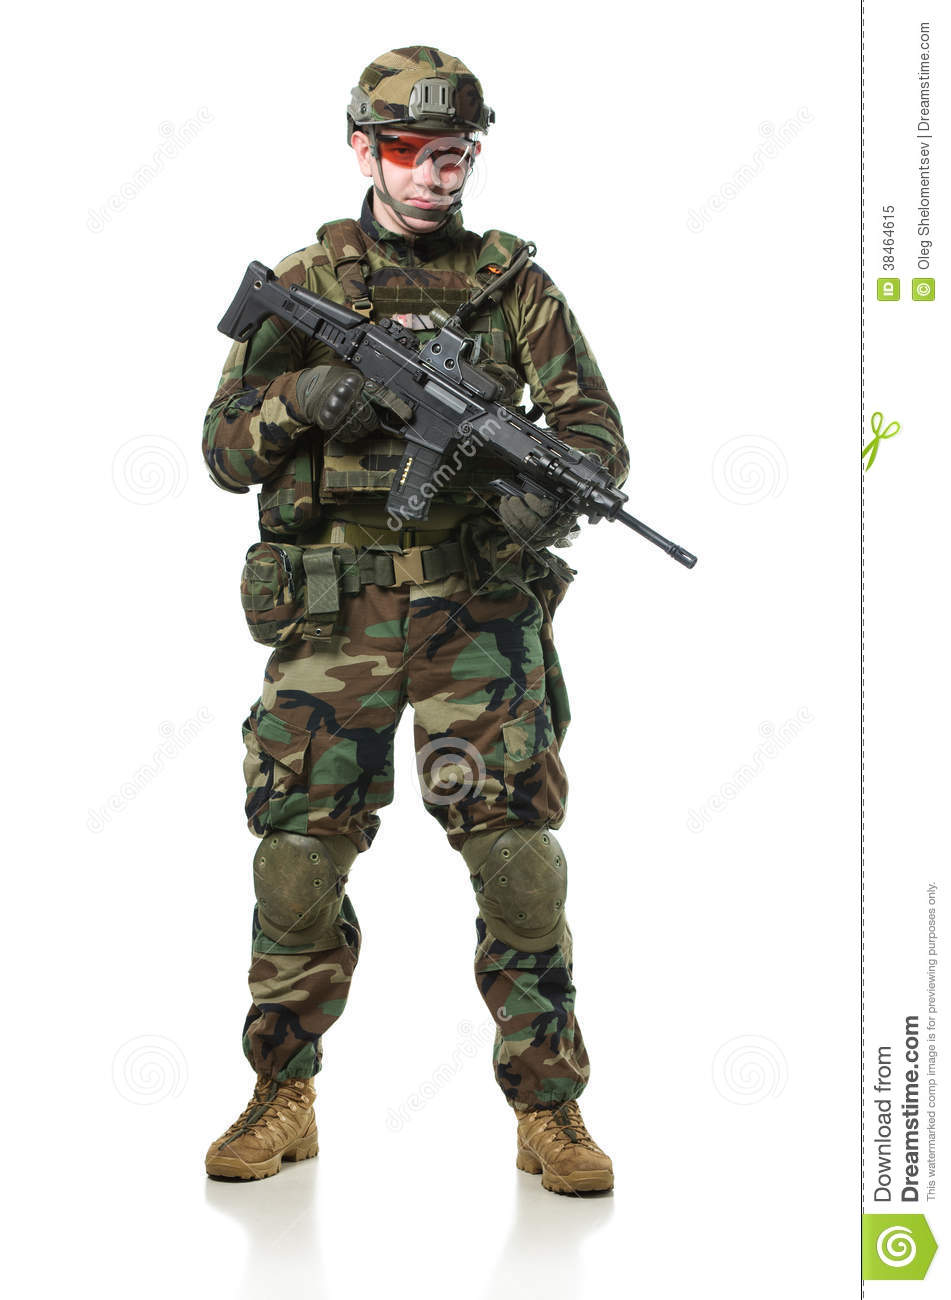 nato soldier in full gear royalty free stock photo